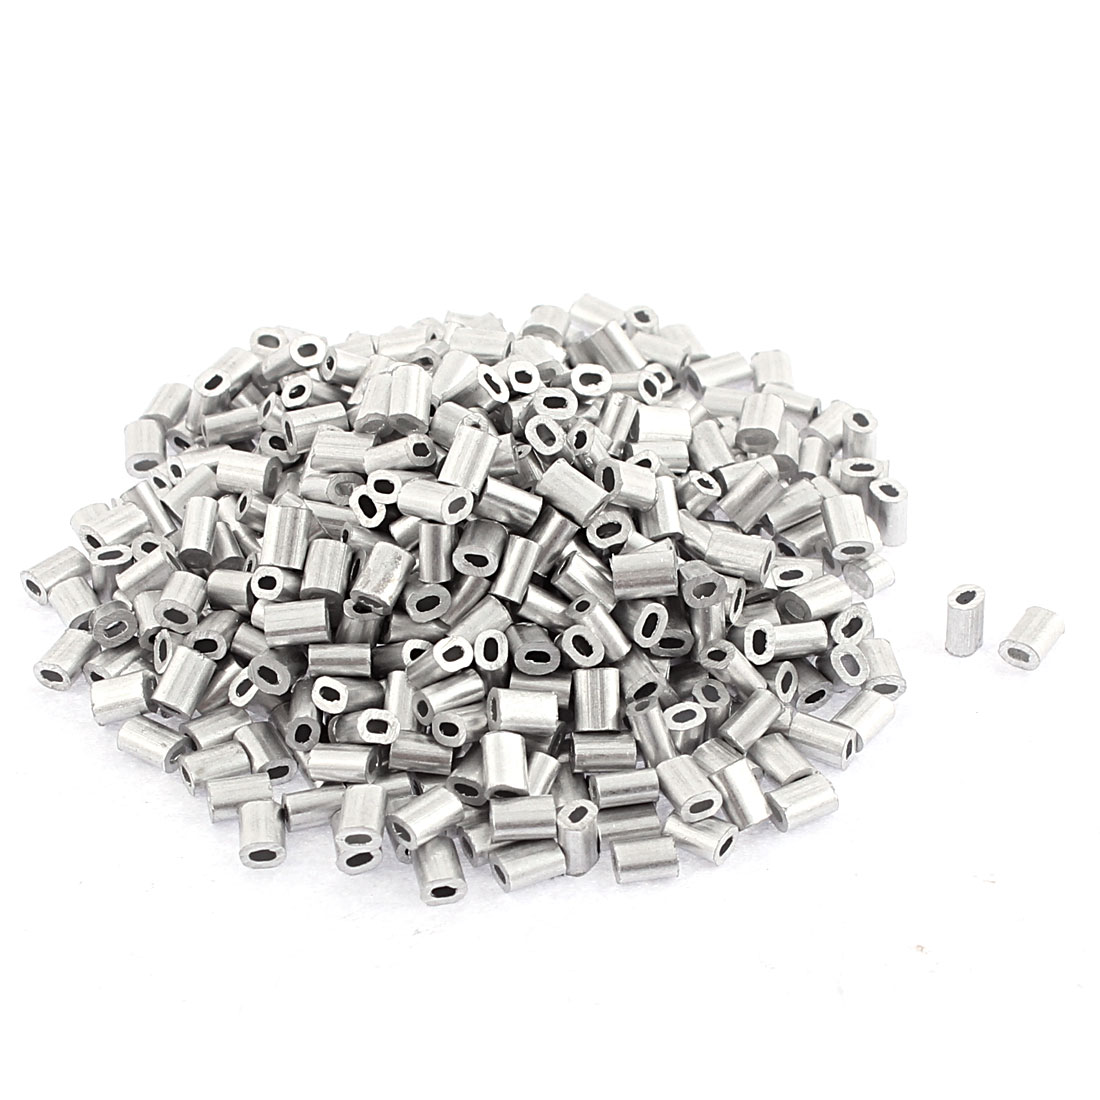 Oval Aluminum Sleeves Clamps Silver Tone 100pcs for 0.5mm Wire Rope Swage Clip